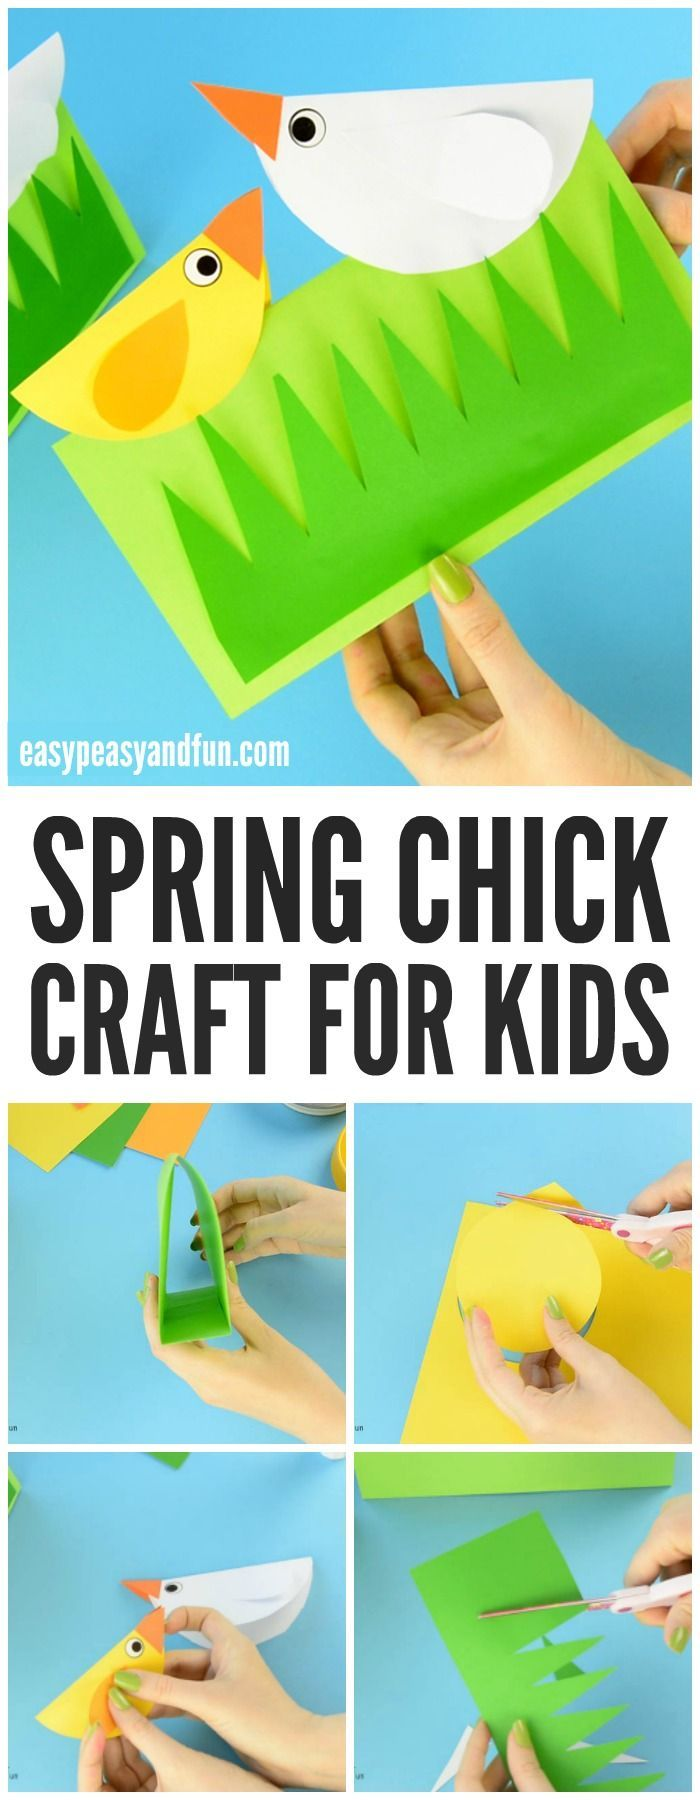 119 best Spring Ideas For Kids images on Pinterest | Crafts for kids ...